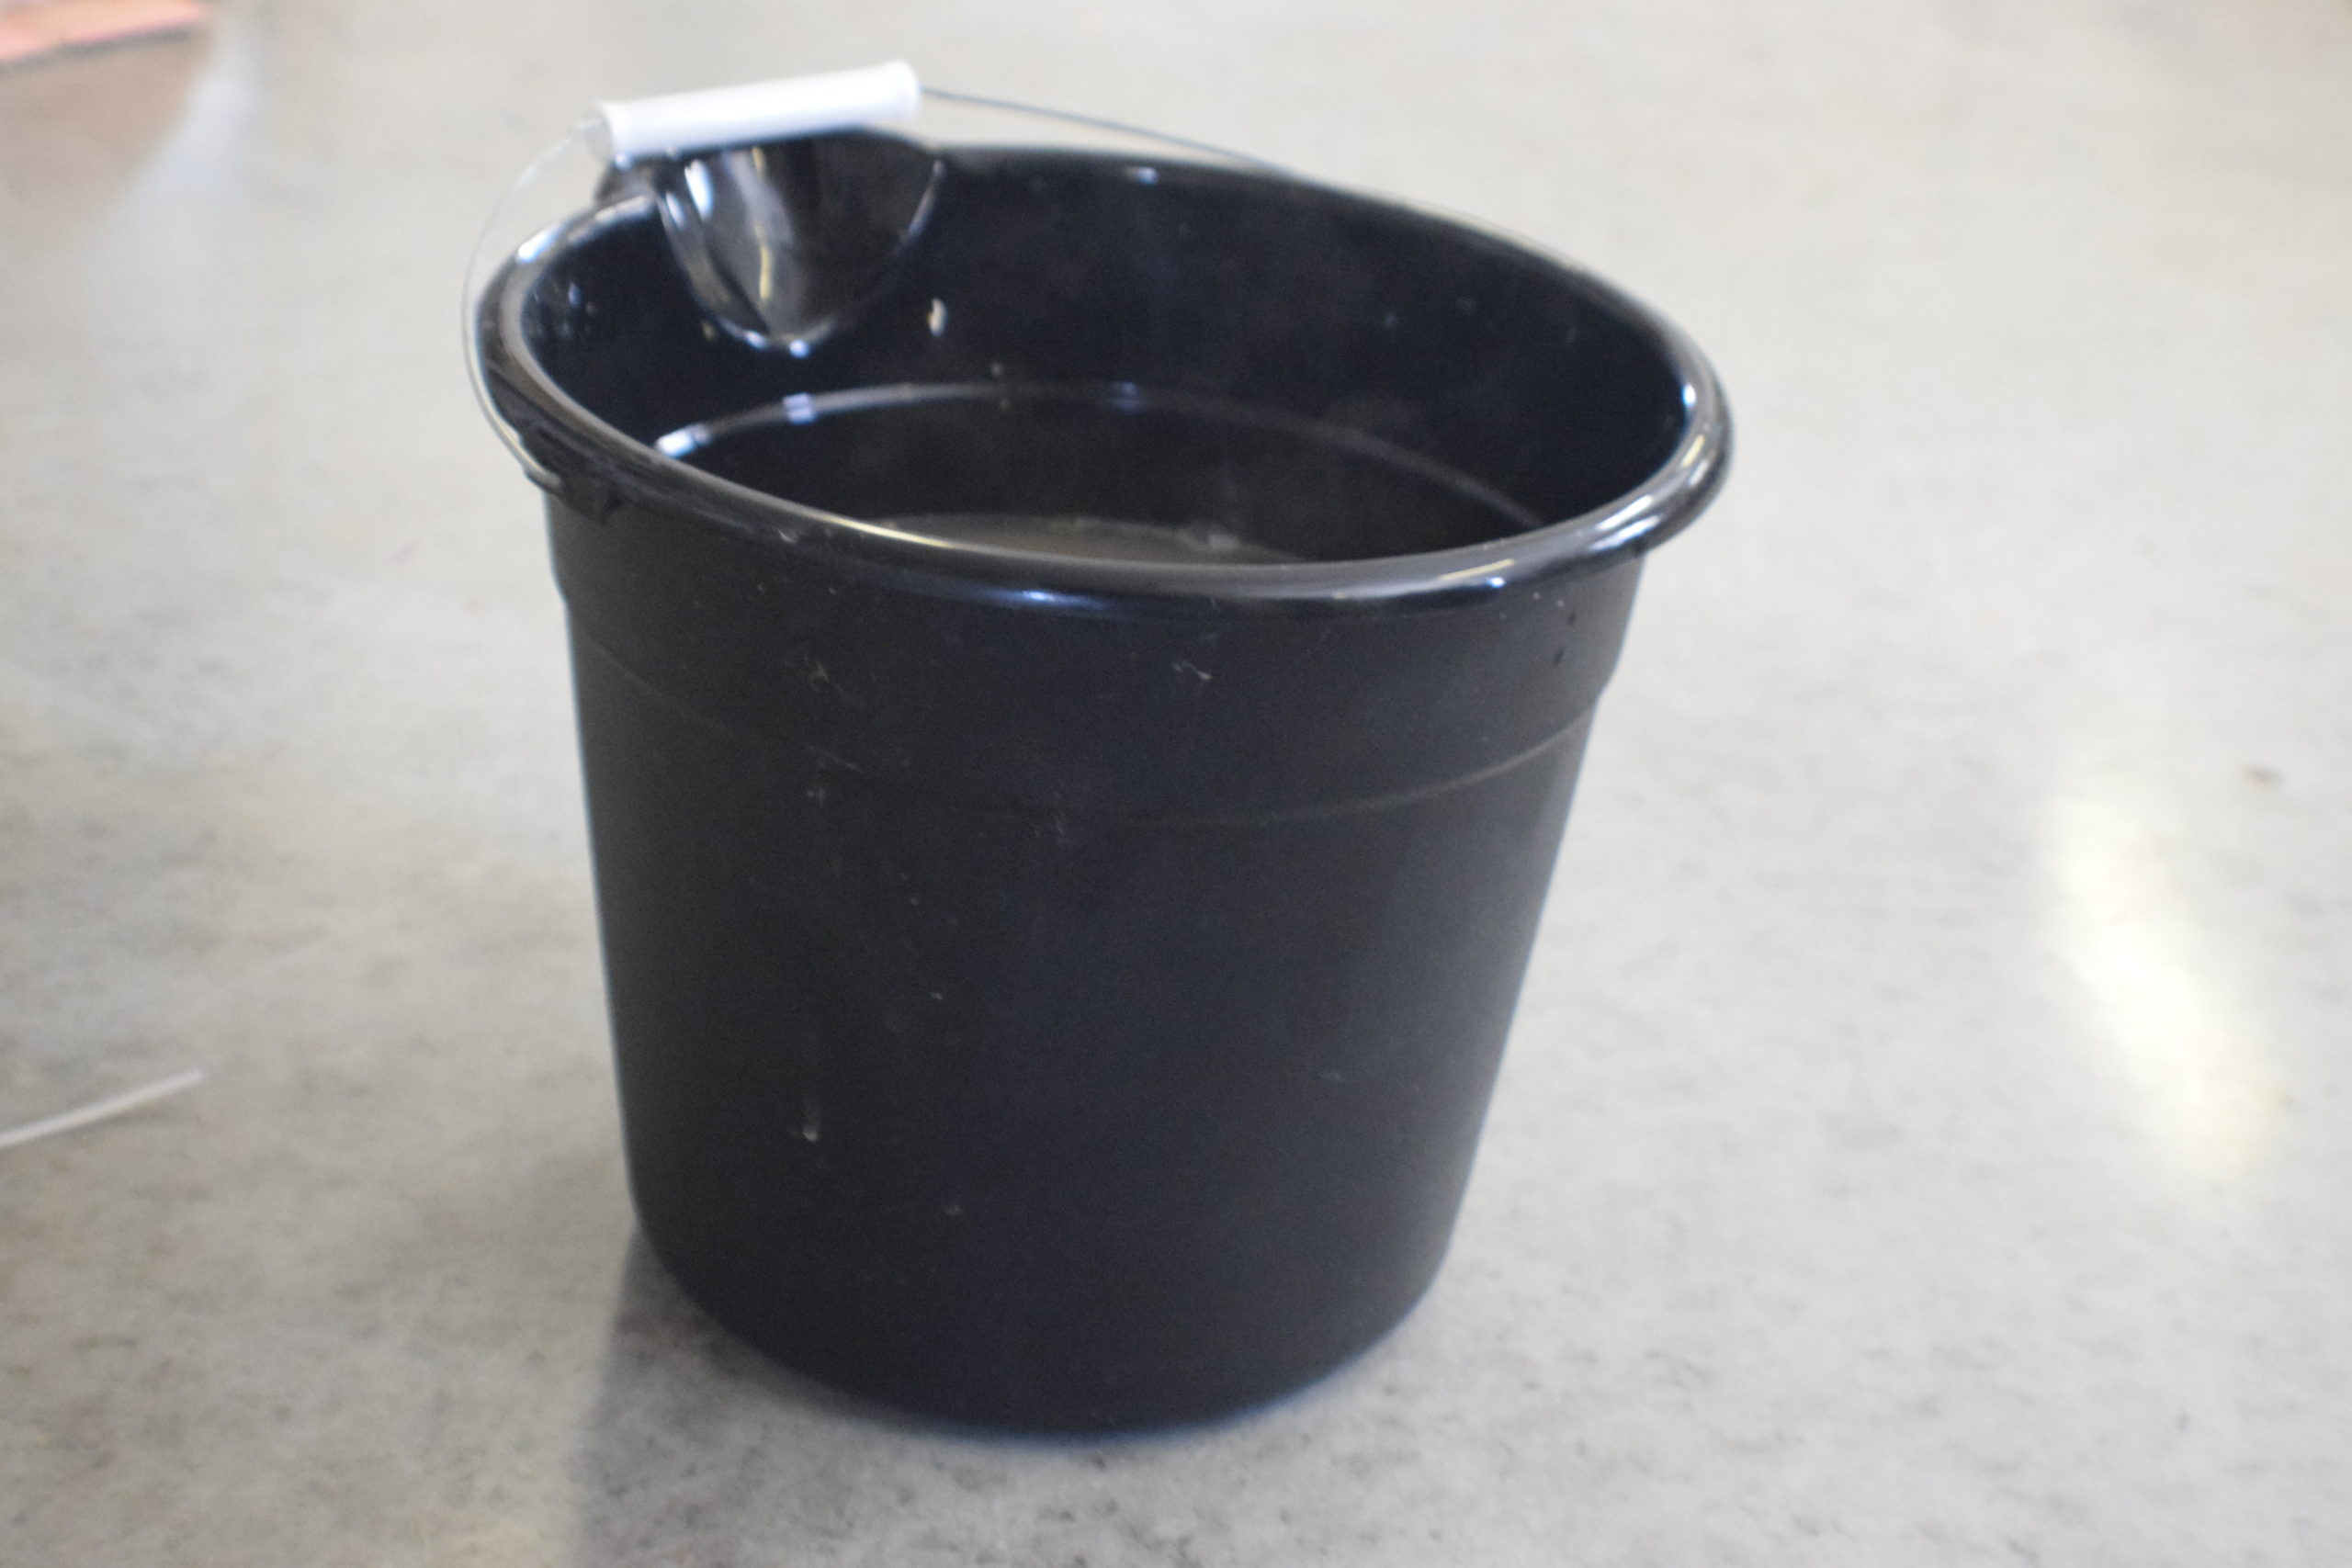 Black bucket of soapy water on a concrete floor